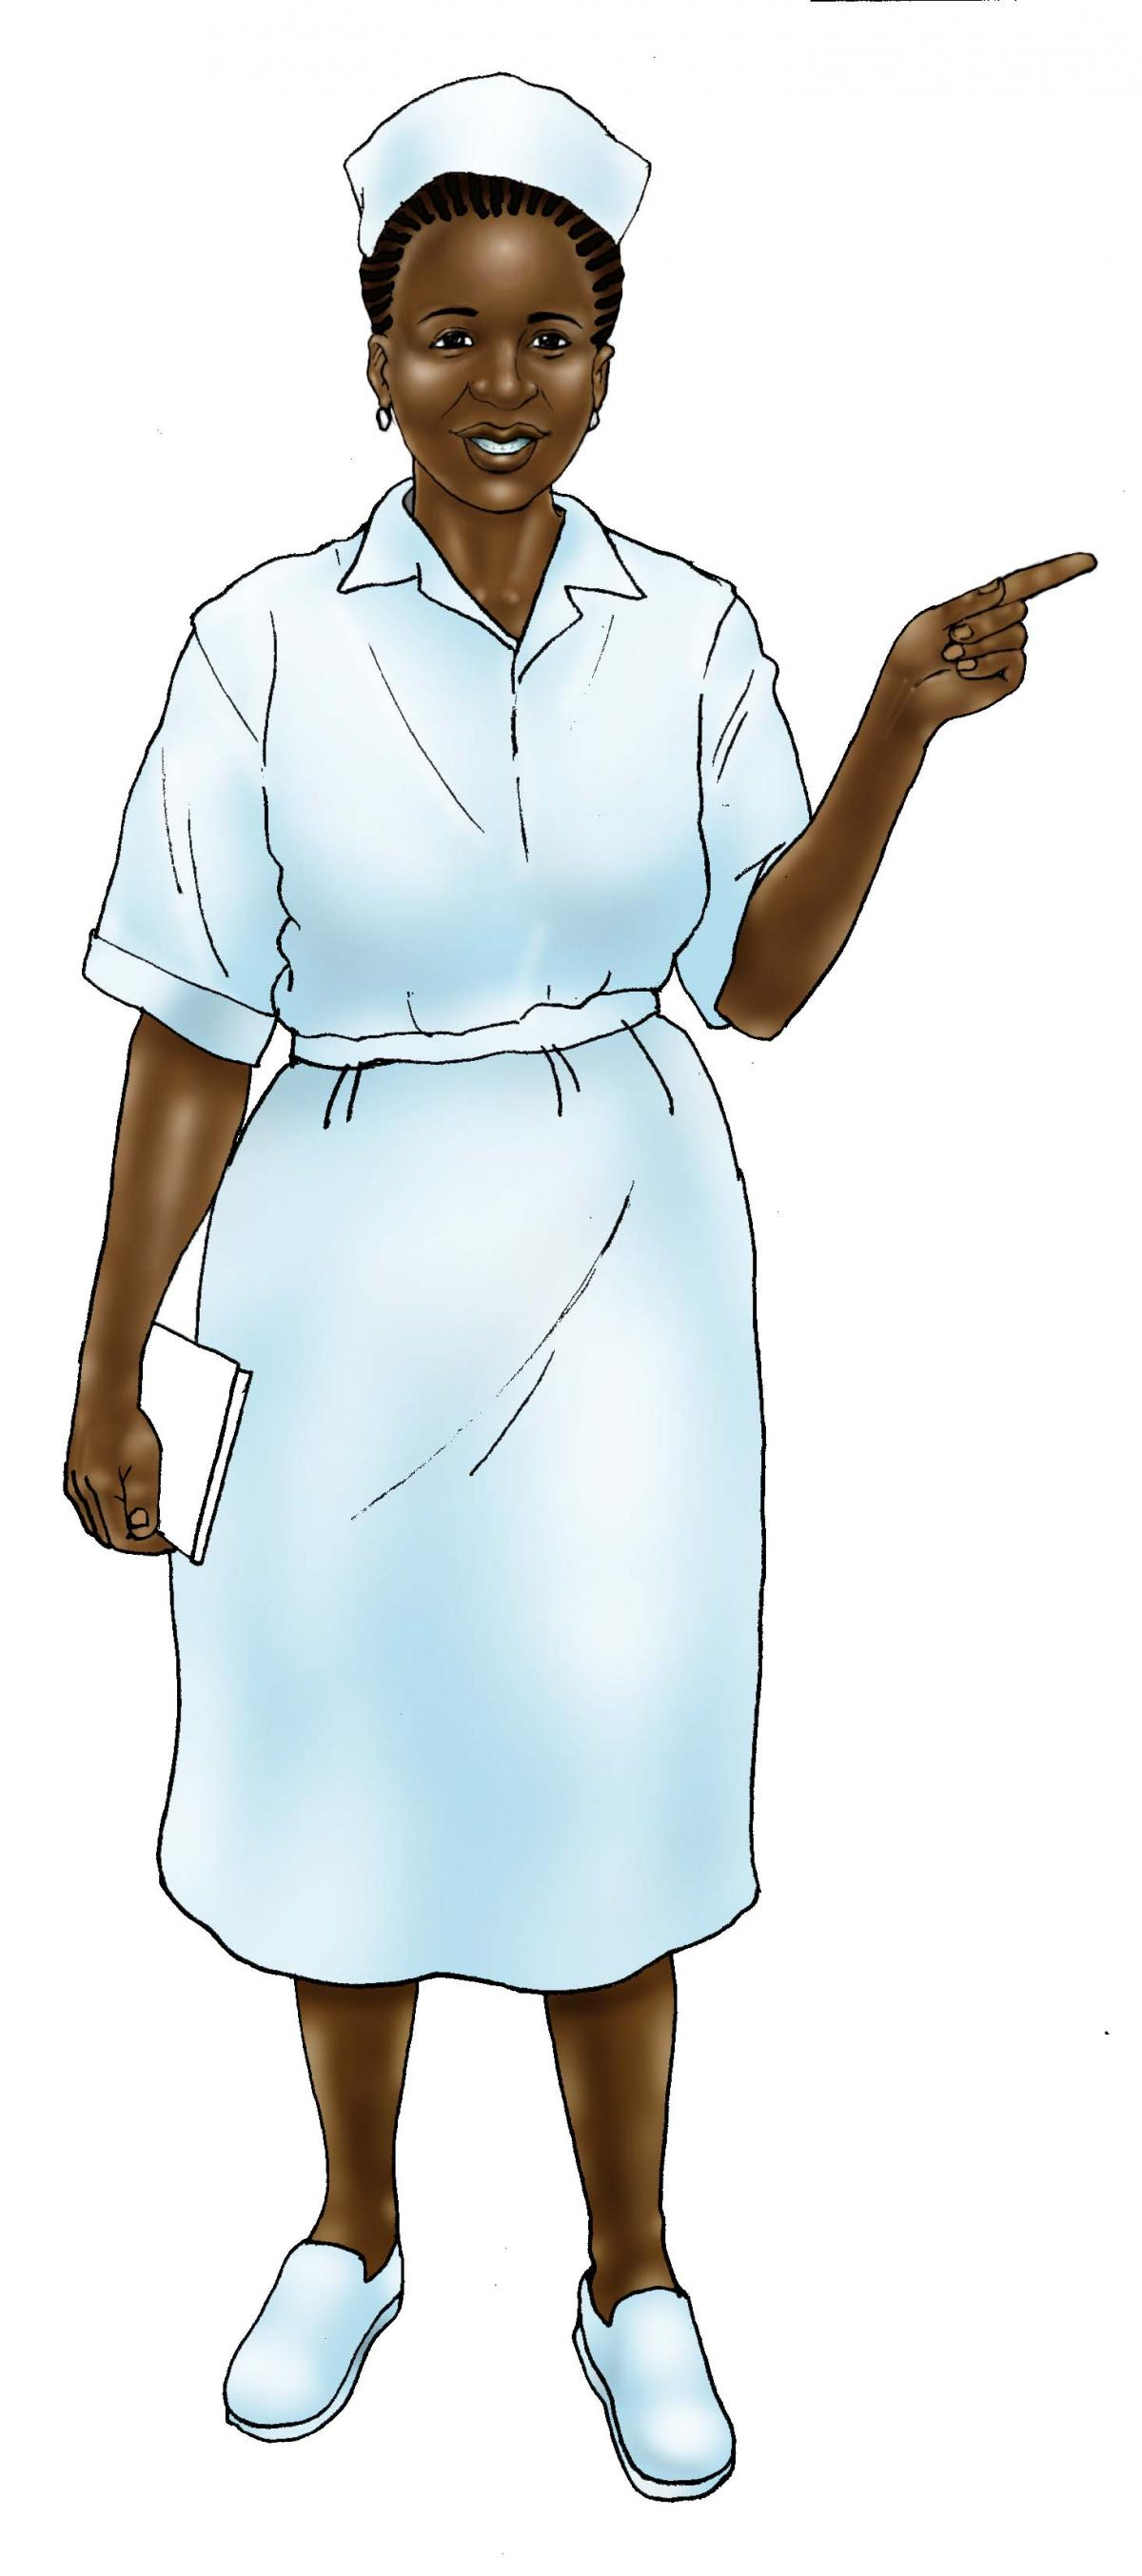 People - Nurse from clinic - 00 - Unknown